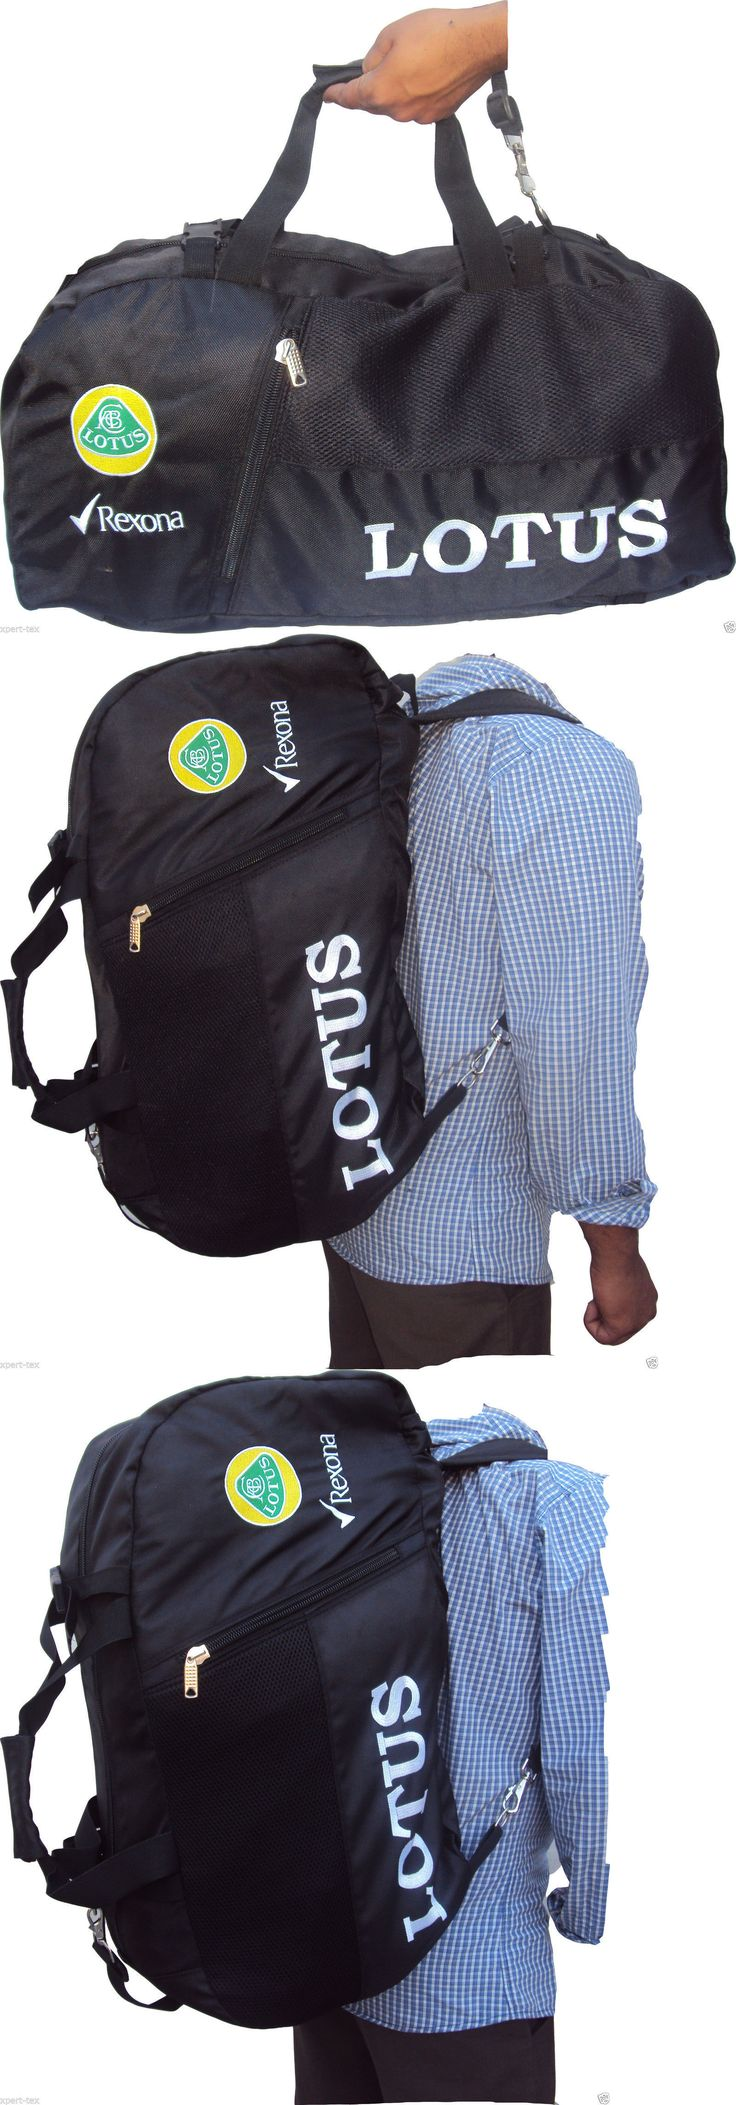 Other Go-Karts Recreational 40152: Sports Bag Travel Backpack Lotus Model -> BUY IT NOW ONLY: $56 on eBay!